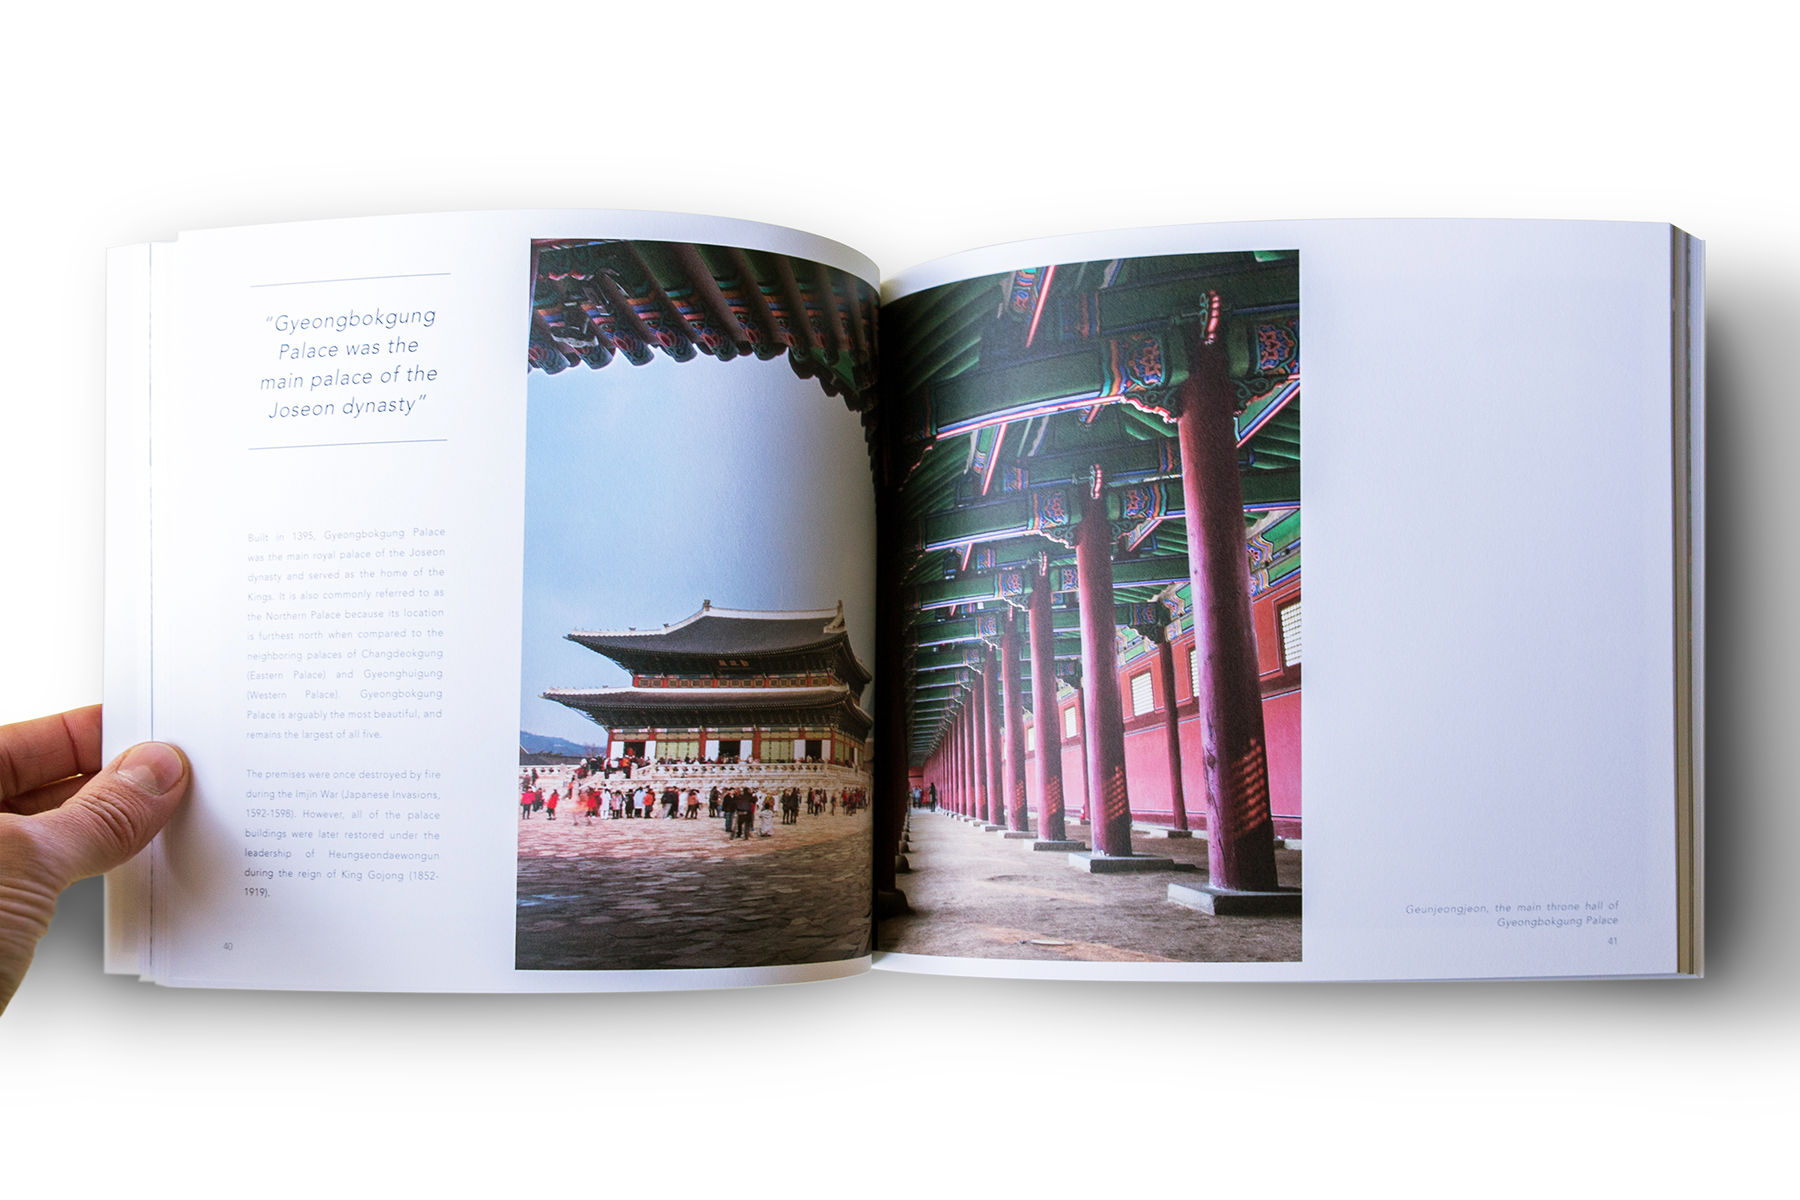 Pages from the book 'South Korea'; image showing the inside of Gyeongbokgung Palace